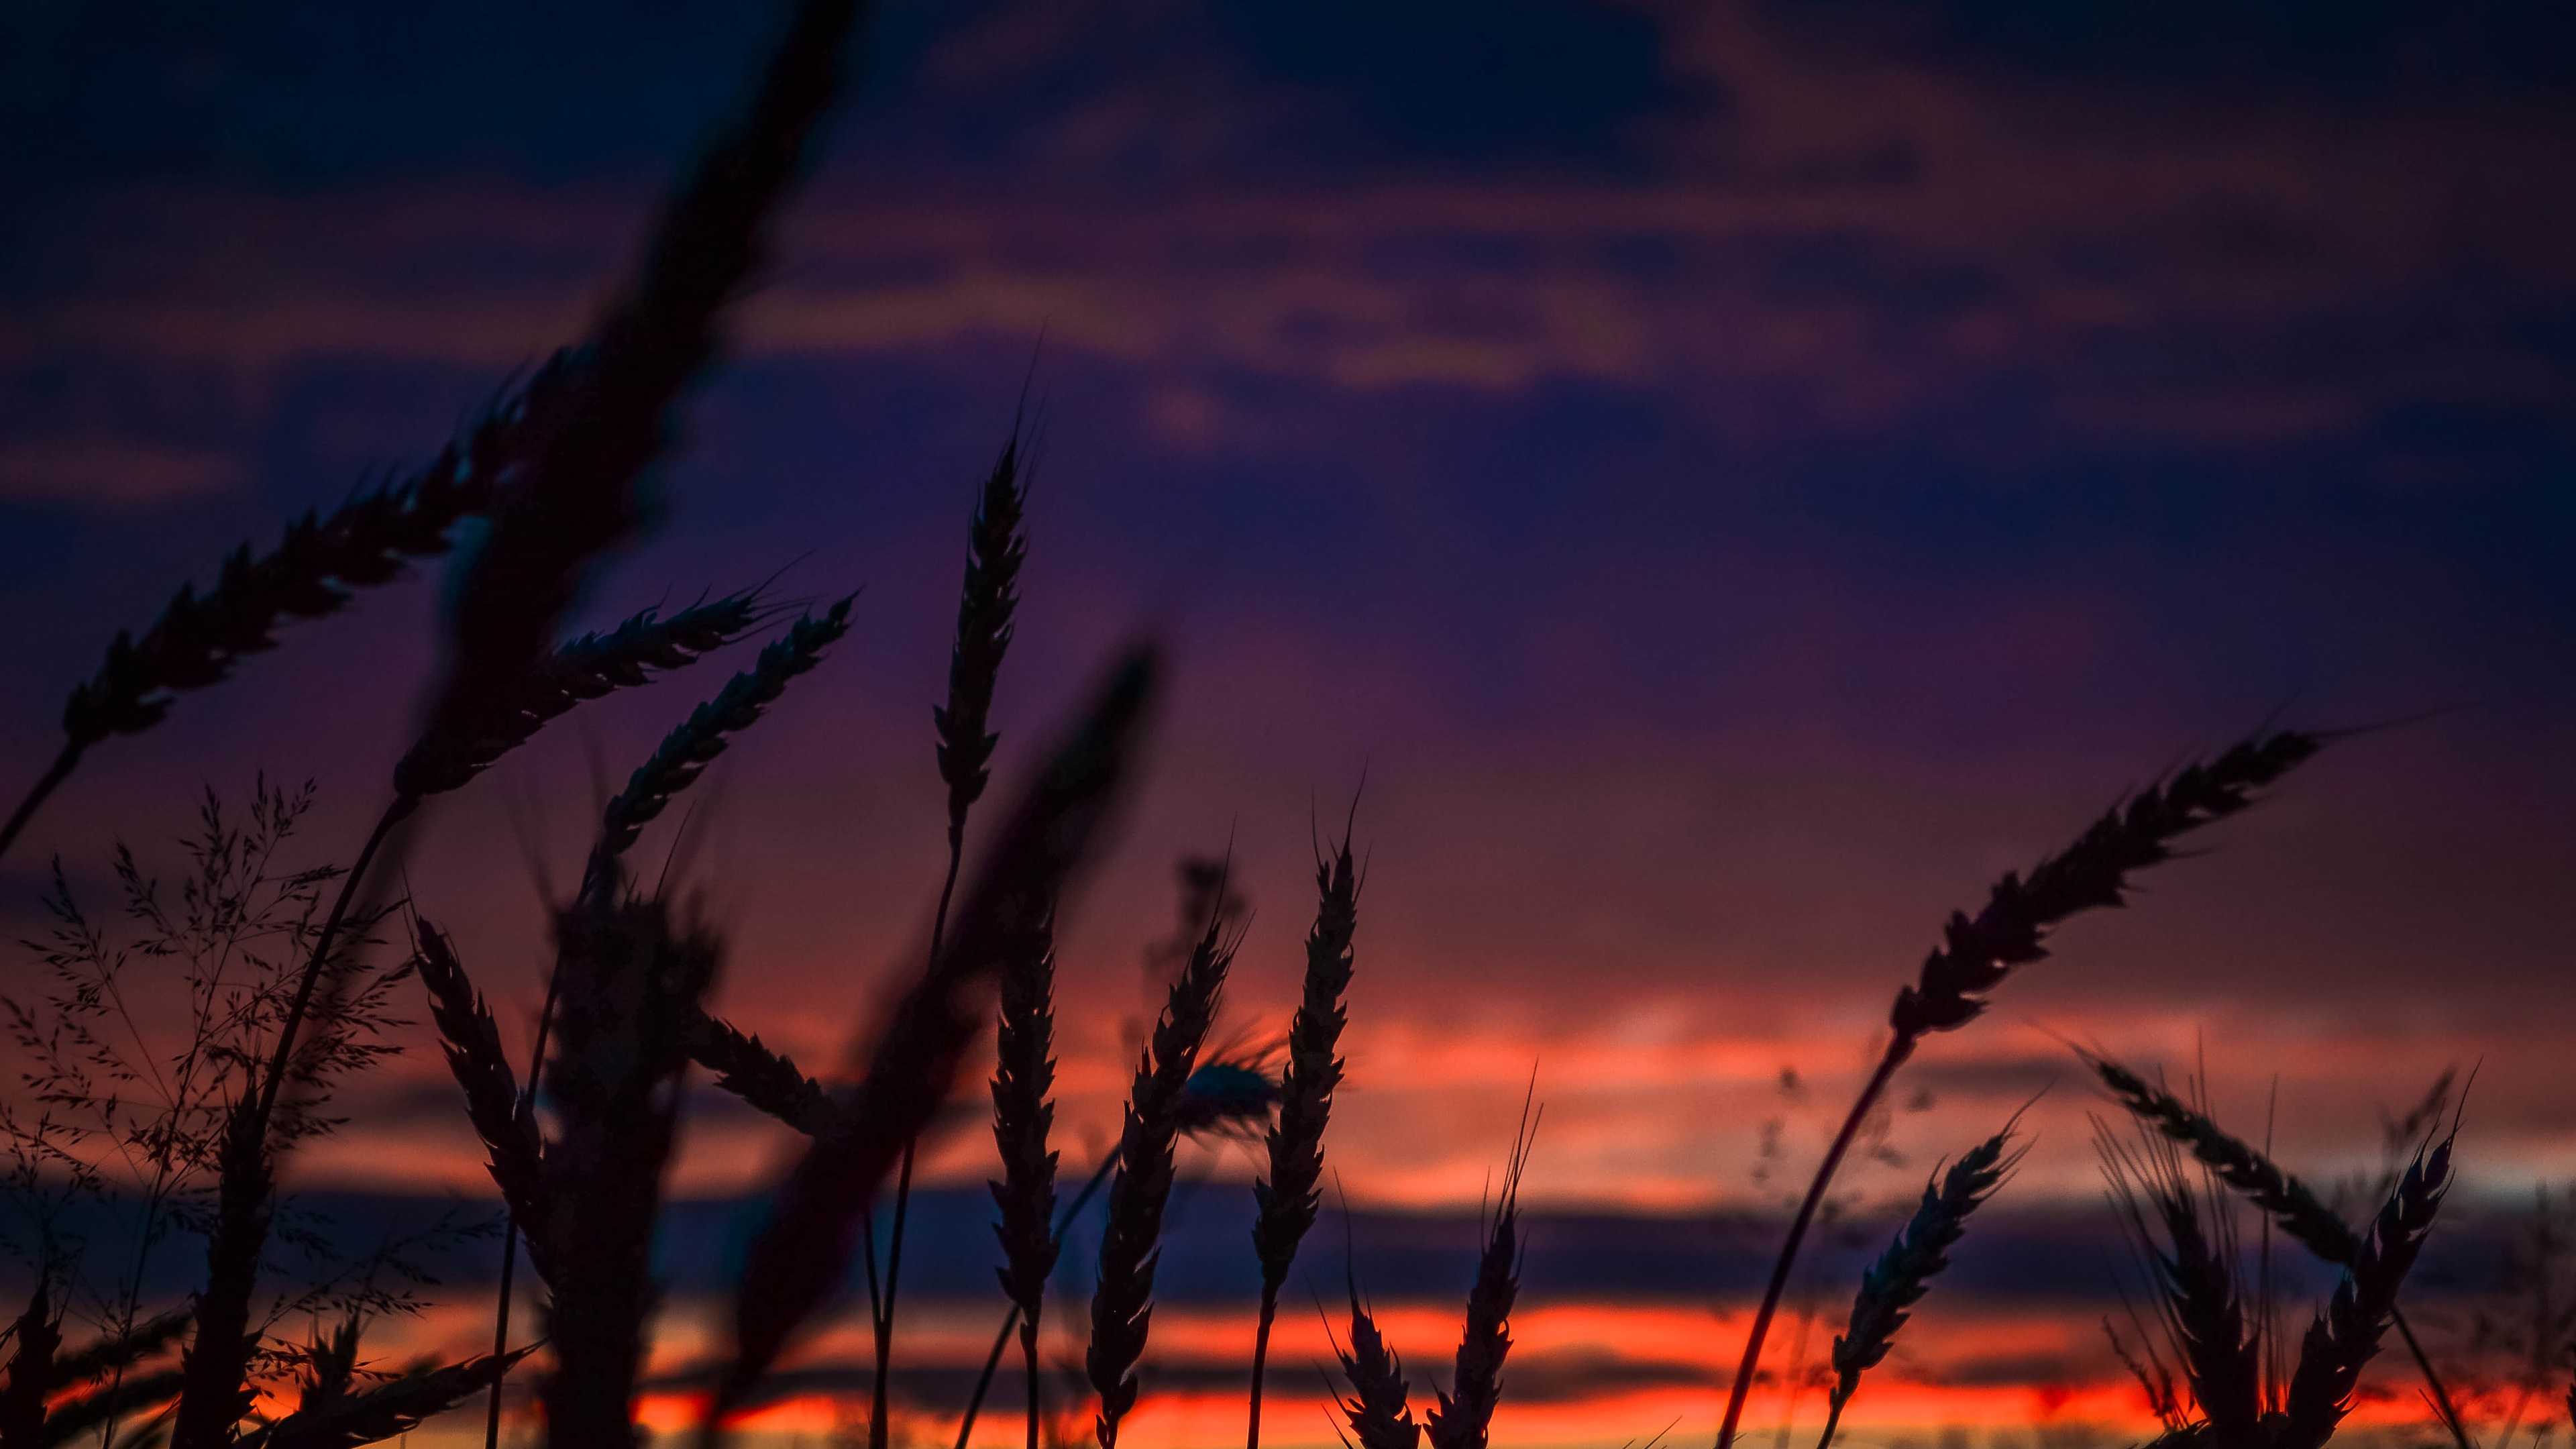 wheats during dawn in landscape photography 1540136543 - Wheats During Dawn In Landscape Photography - wheat wallpapers, photography wallpapers, nature wallpapers, landscape wallpapers, hd-wallpapers, dusk wallpapers, dawn wallpapers, 5k wallpapers, 4k-wallpapers